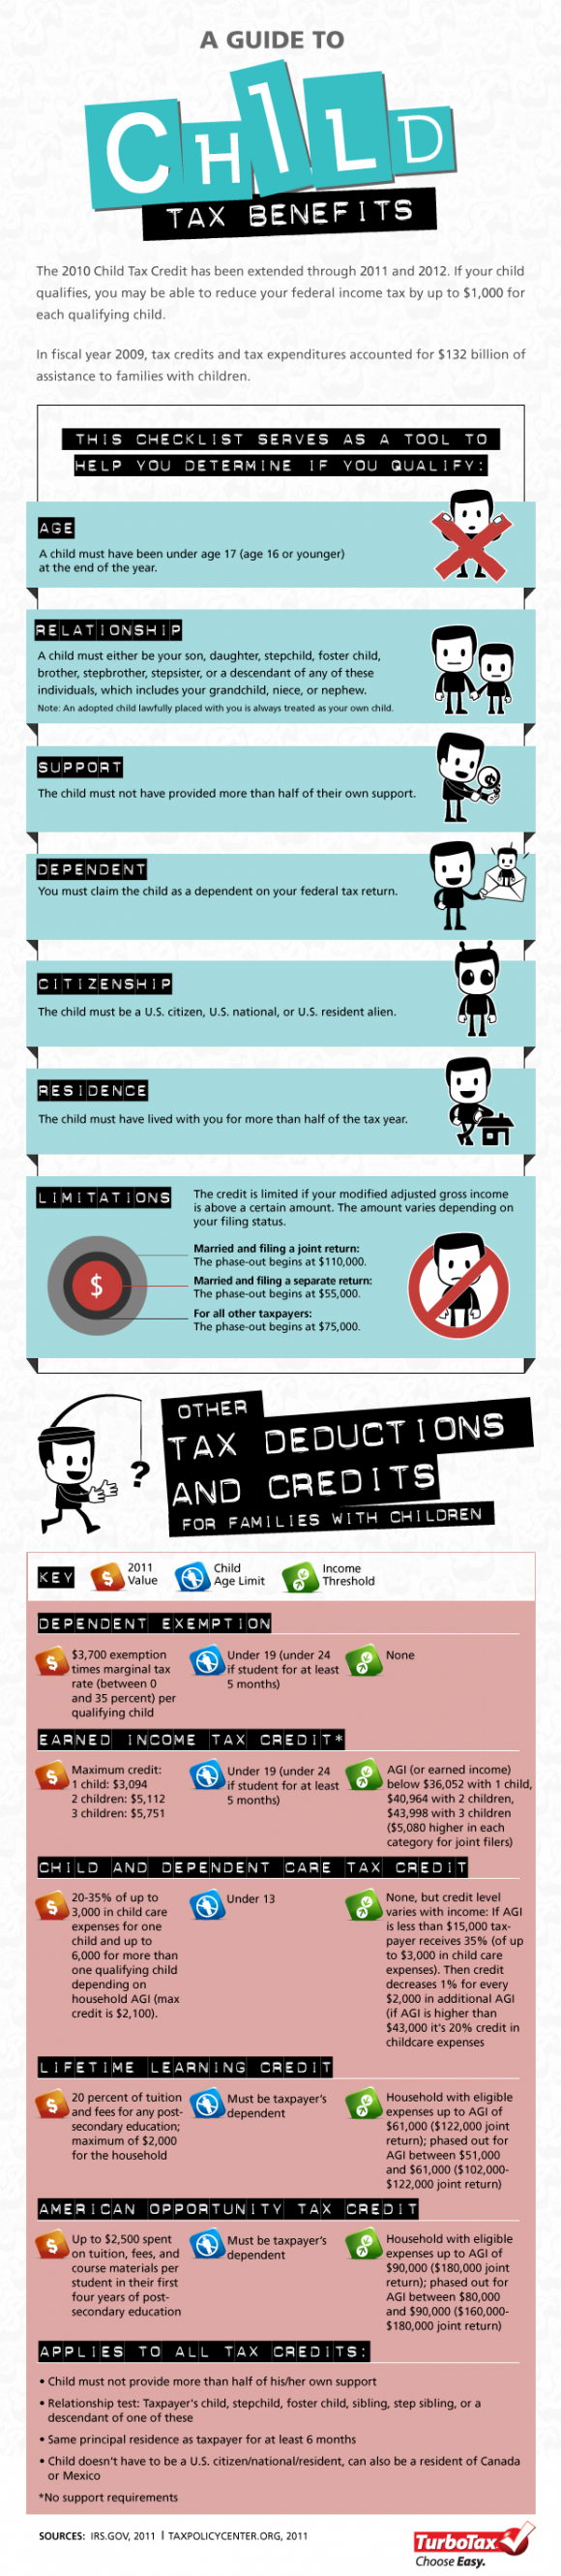 A Guide to Child Tax Benefits